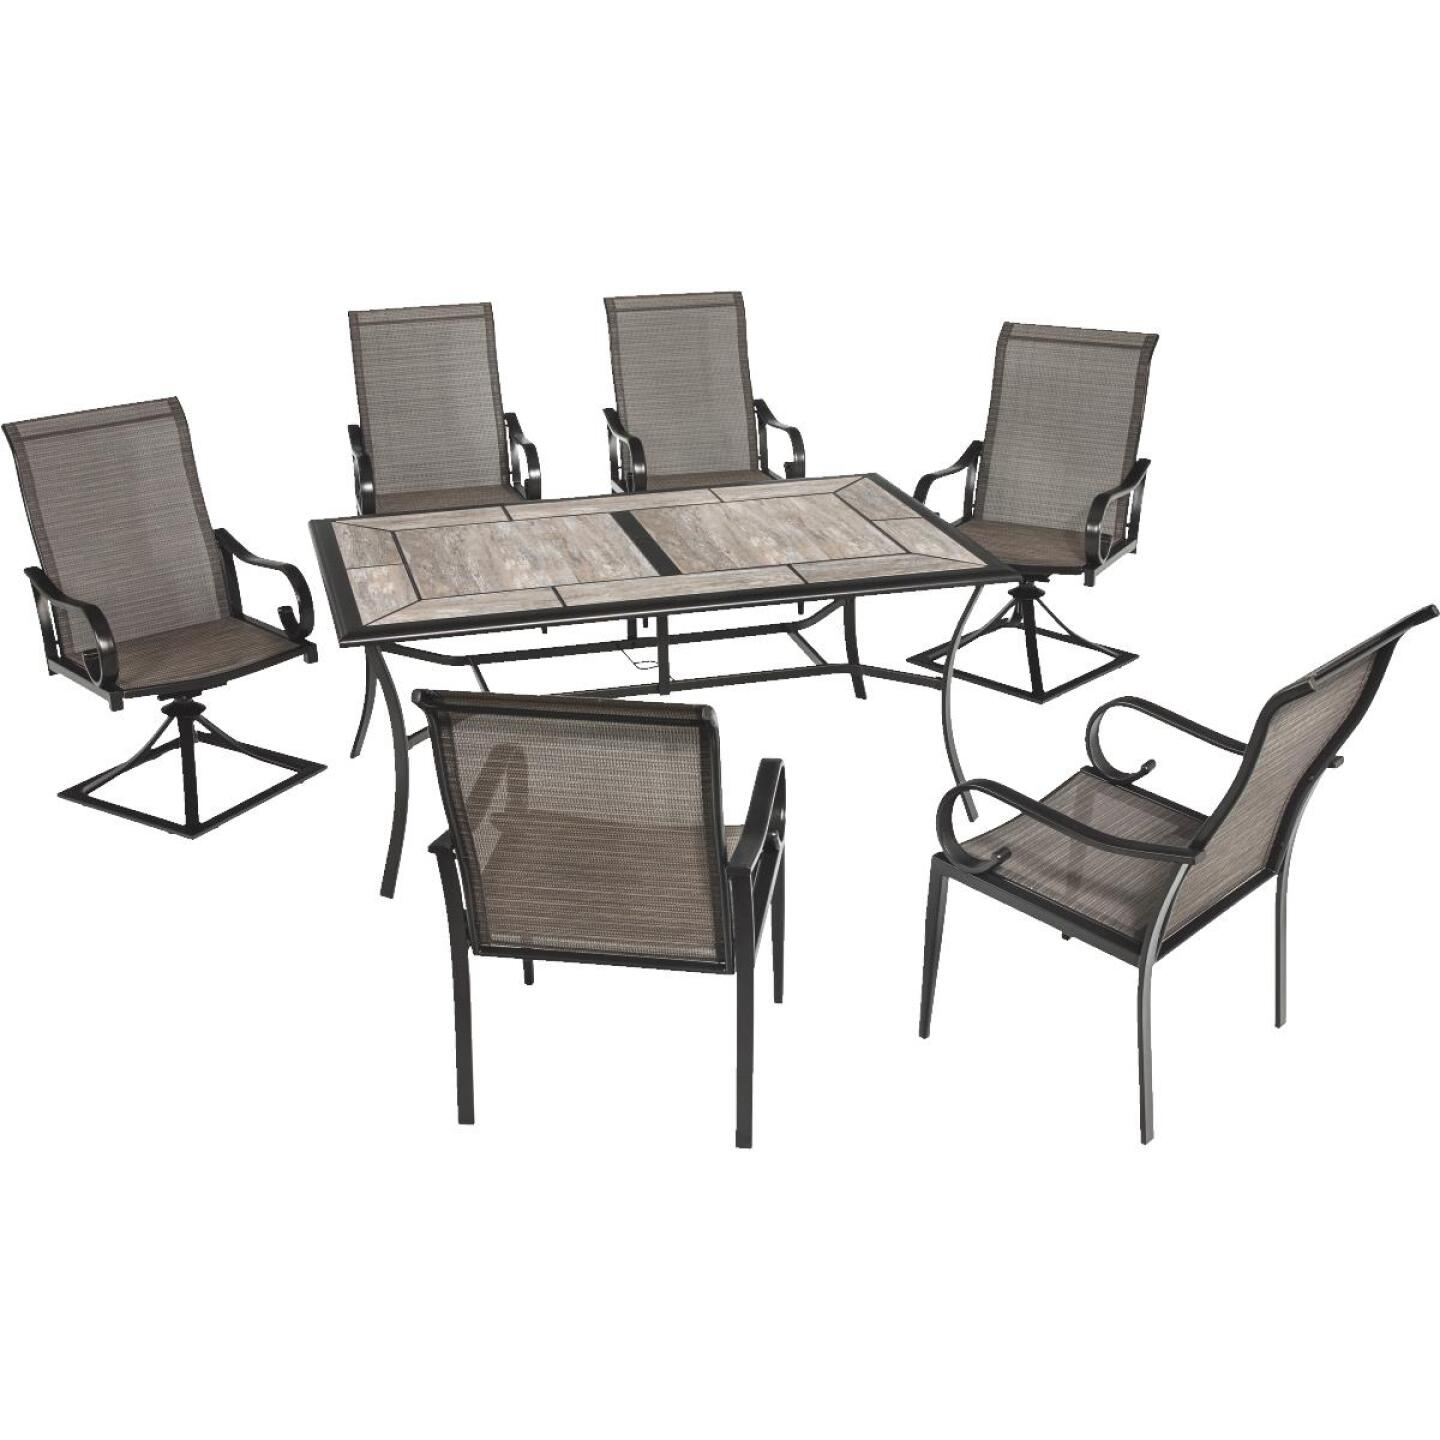 Outdoor Expressions Berkshire 7-Piece Dining Set Image 11